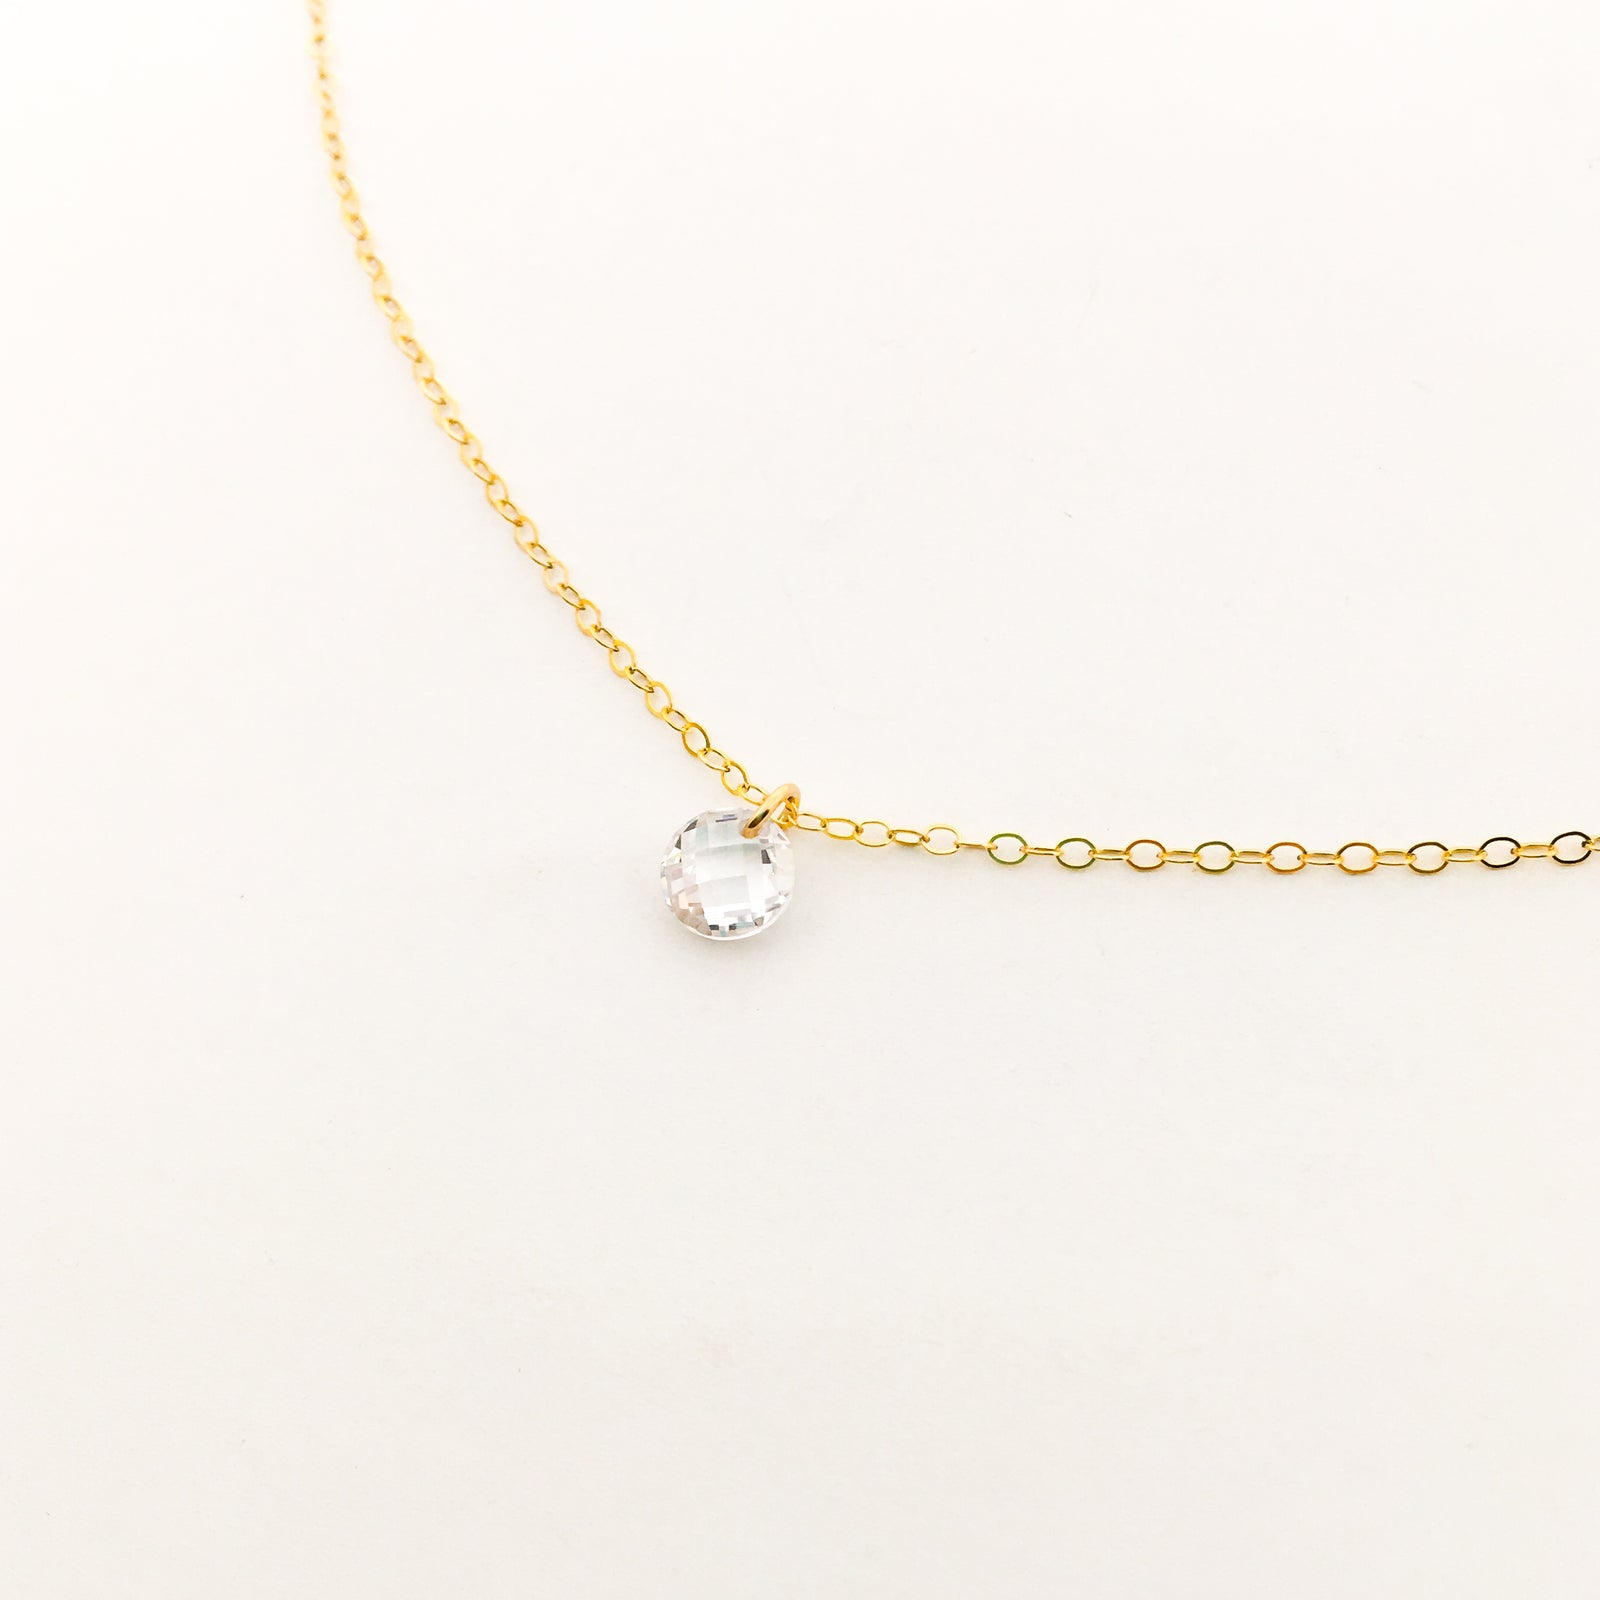 HANGING CRYSTAL NECKLACE | 14K GOLD-FILLED